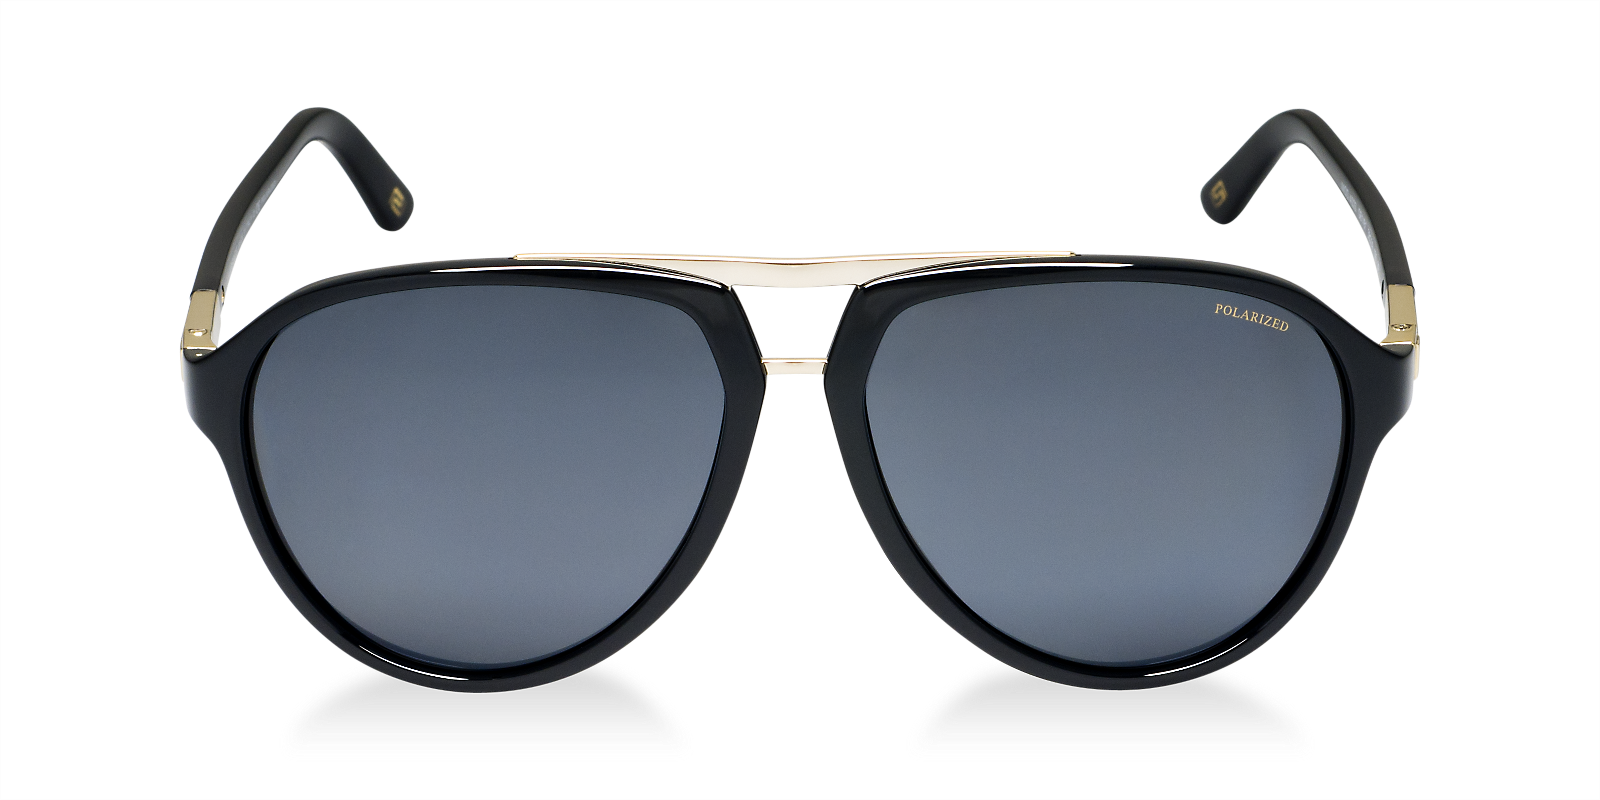 clip free library Aviator clipart mirrored sunglasses. Sunglass png transparent images.